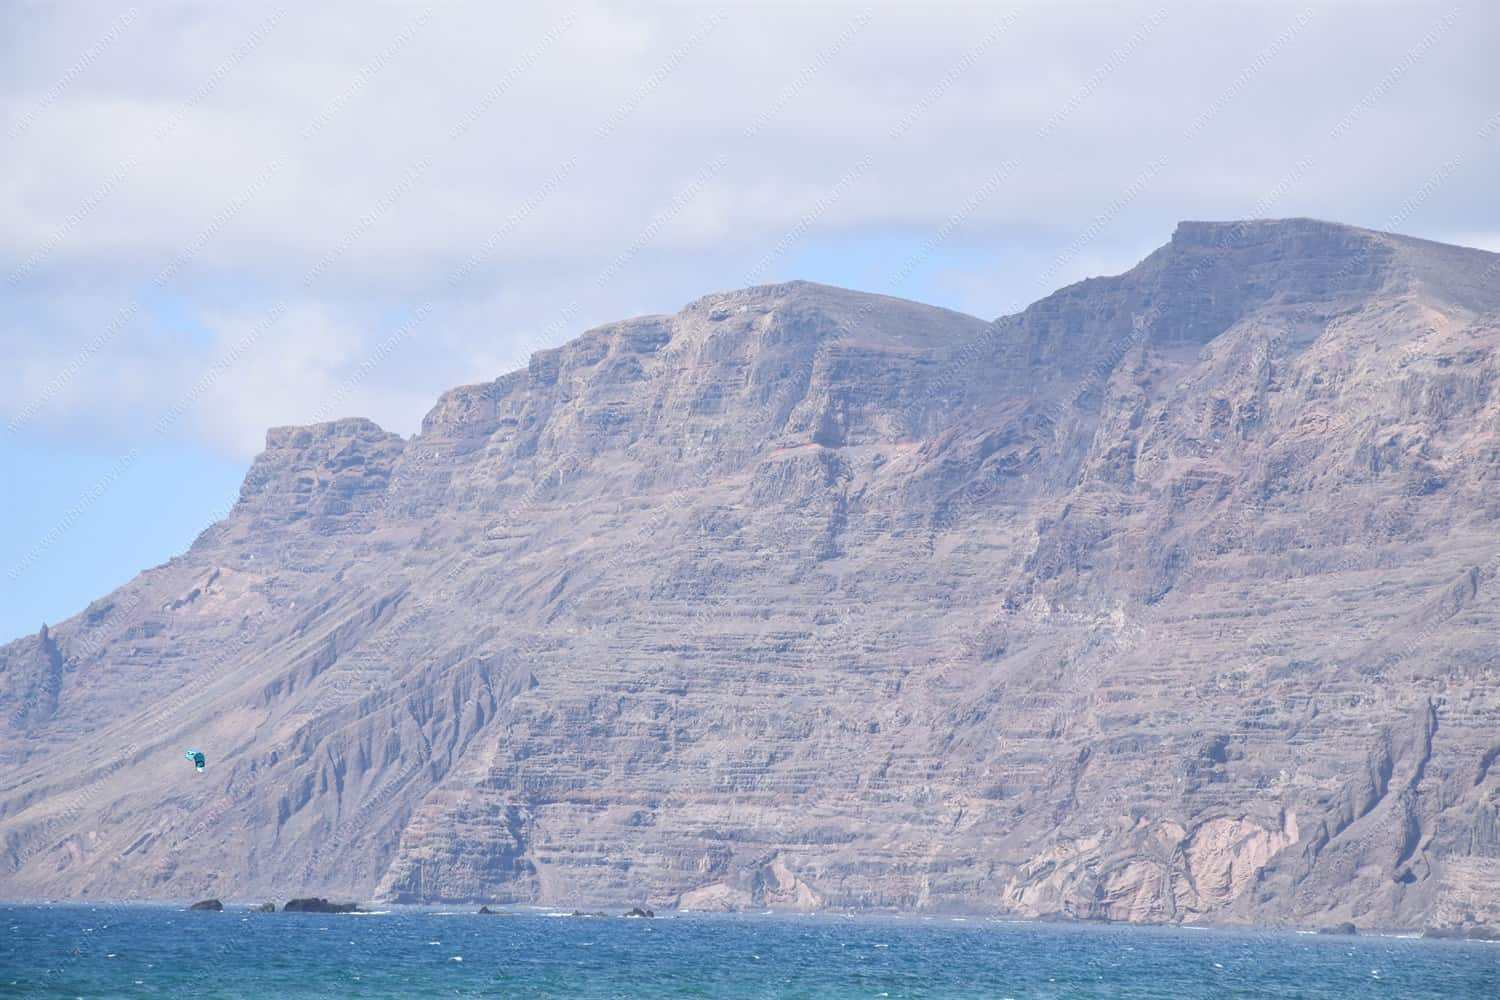 The cliffs of the Famara